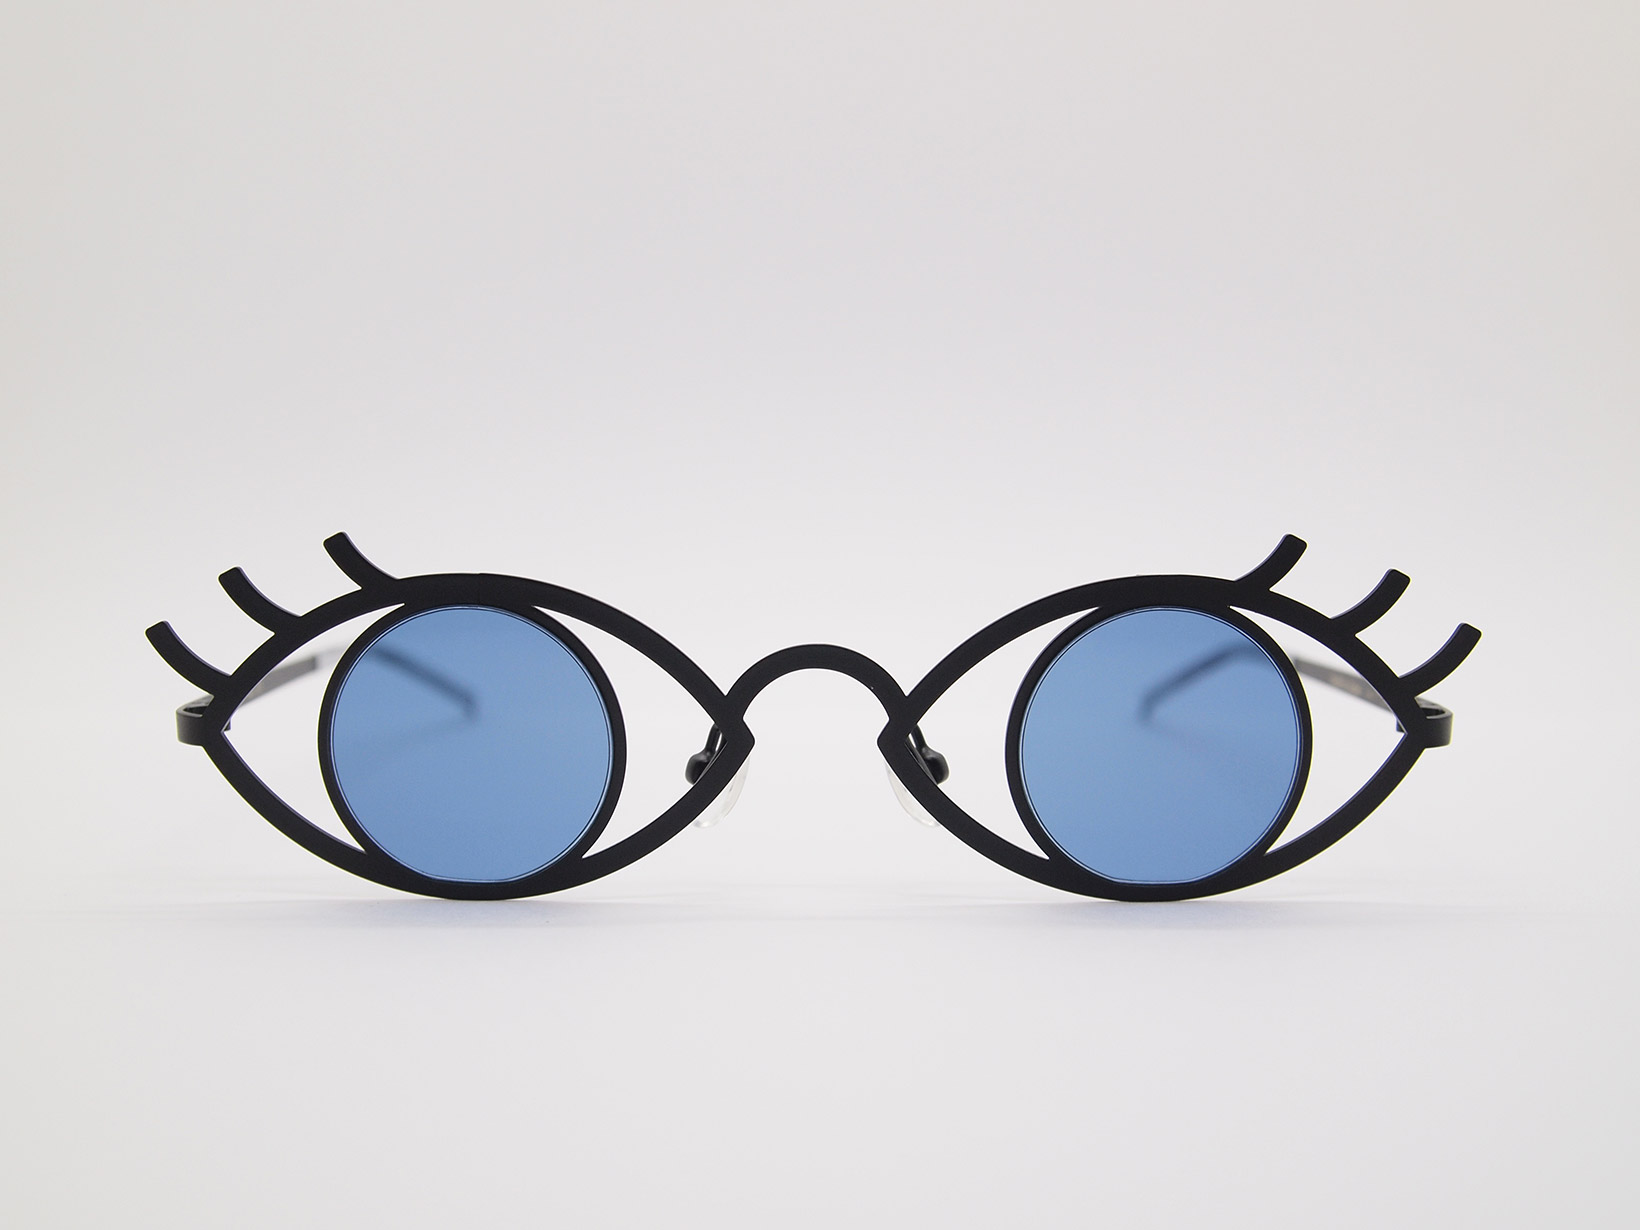 AKITTO 2021-4th eye size:30□40 material:stainless steel price:¥39,160-(税込み)